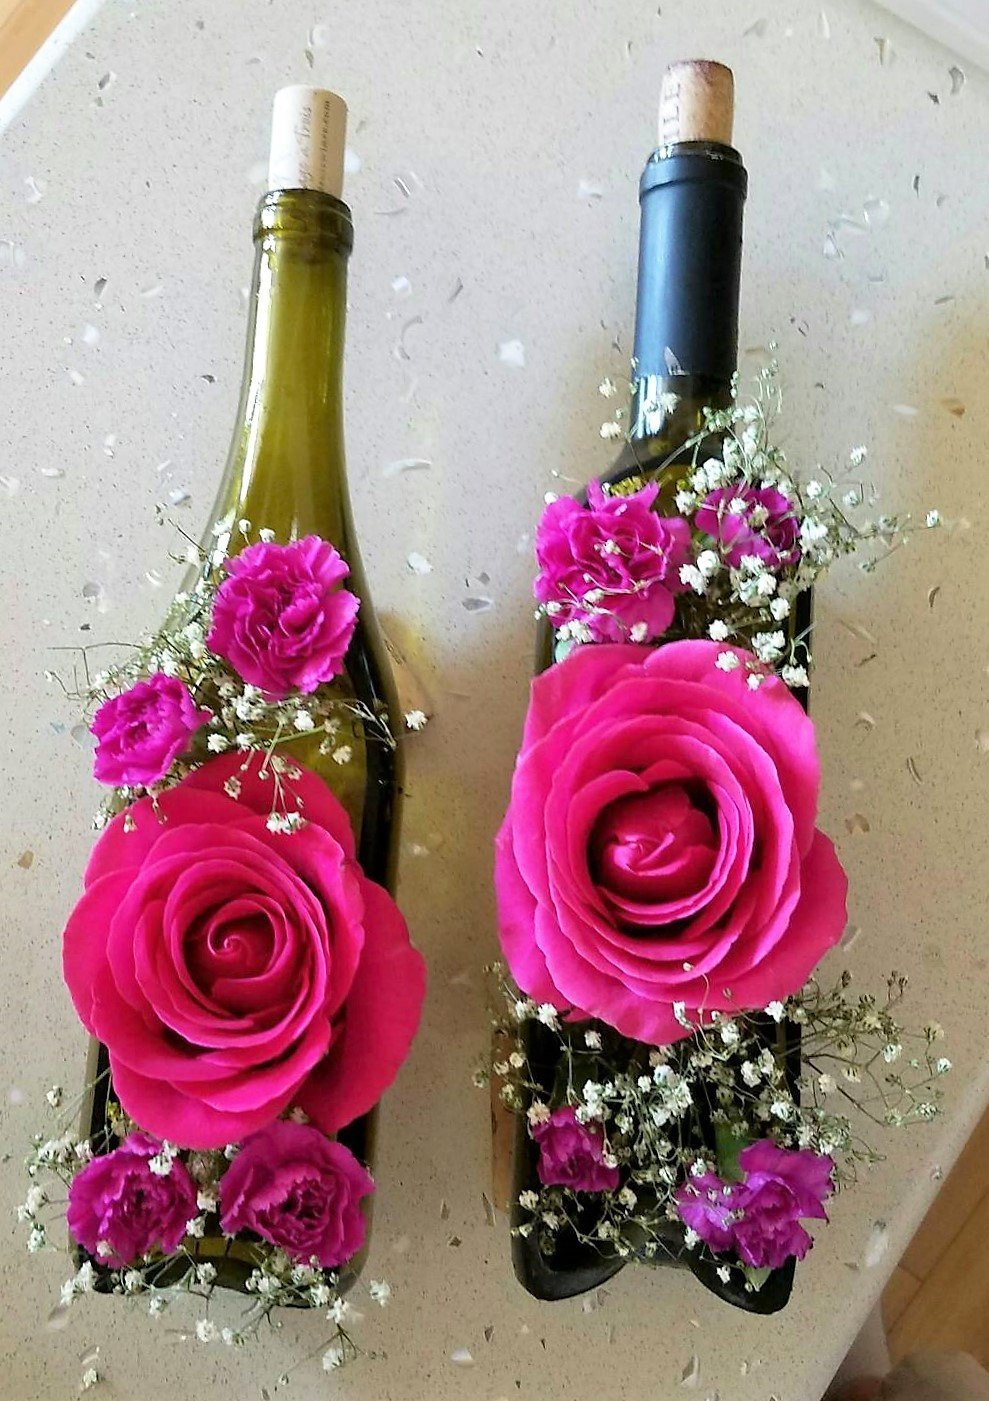 Wine Bottle Flower Vase - Wedding Centerpiece or Wine Gift - Wine Bottle Decor